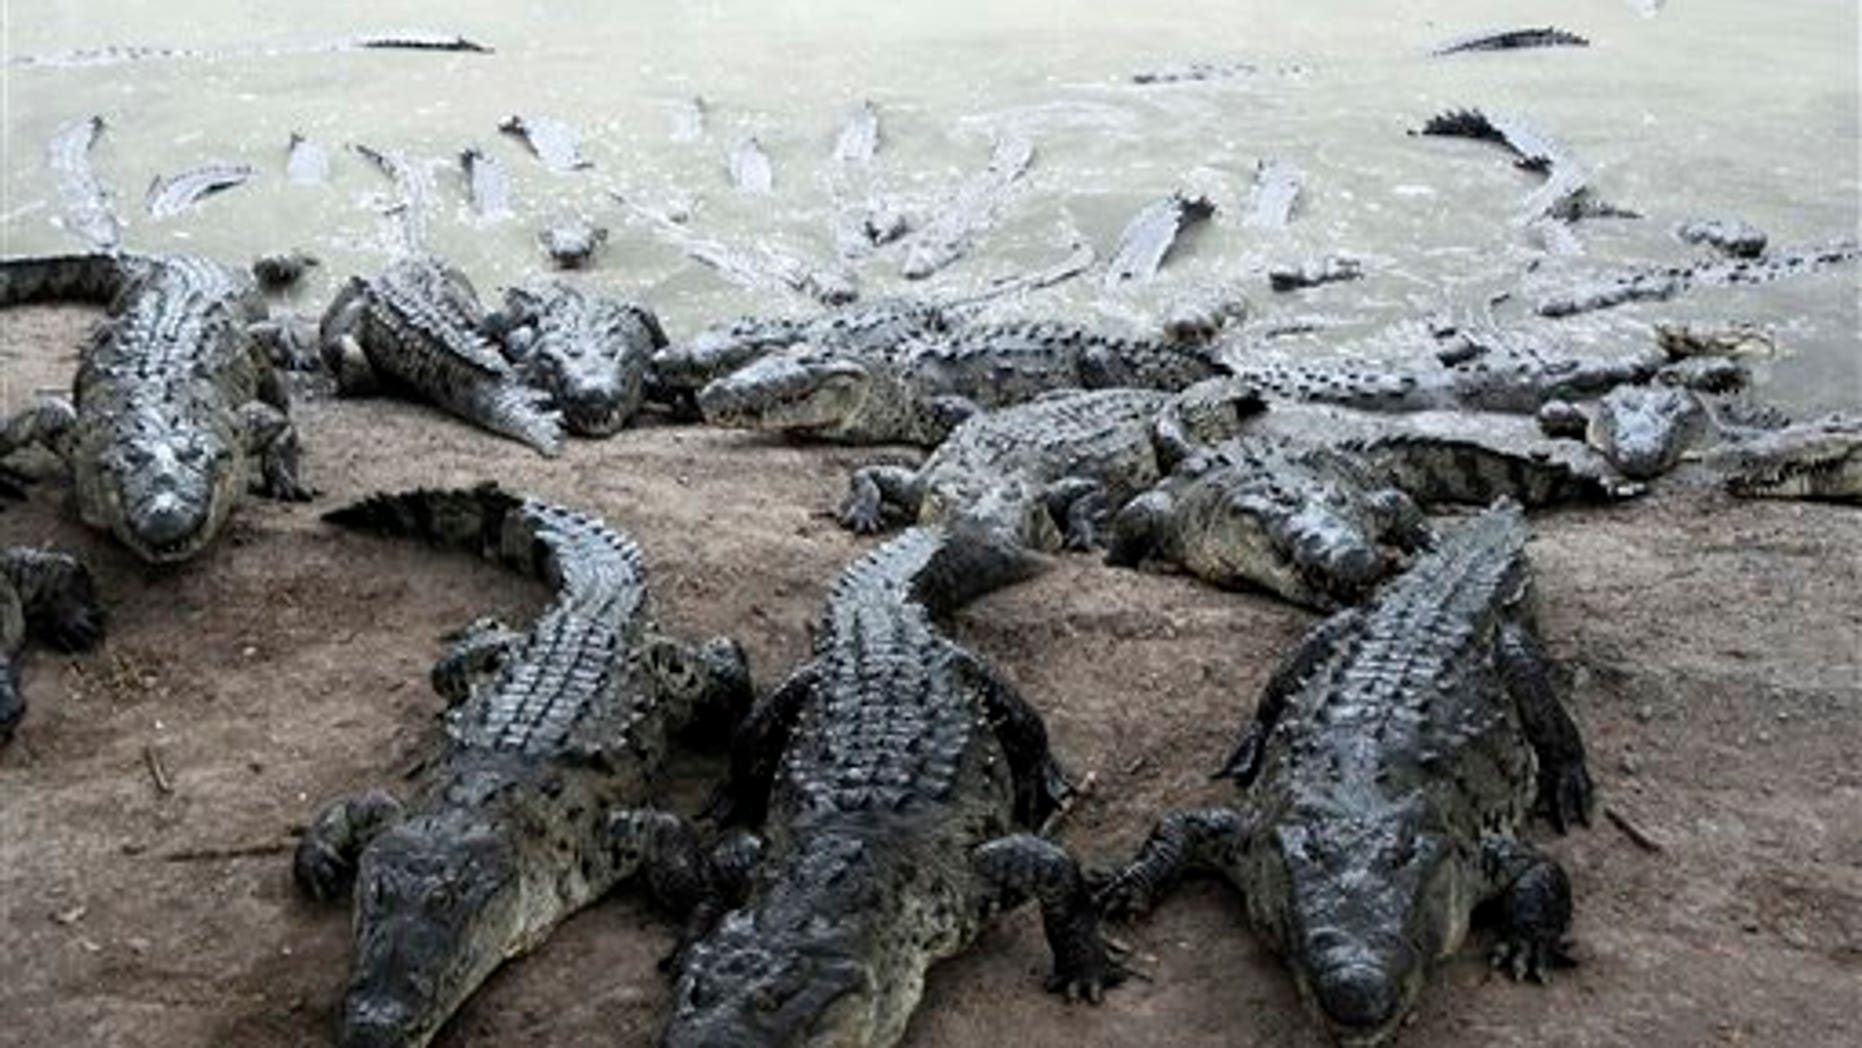 A prison guarded by crocodiles is reportedly under consideration in Indonesia.